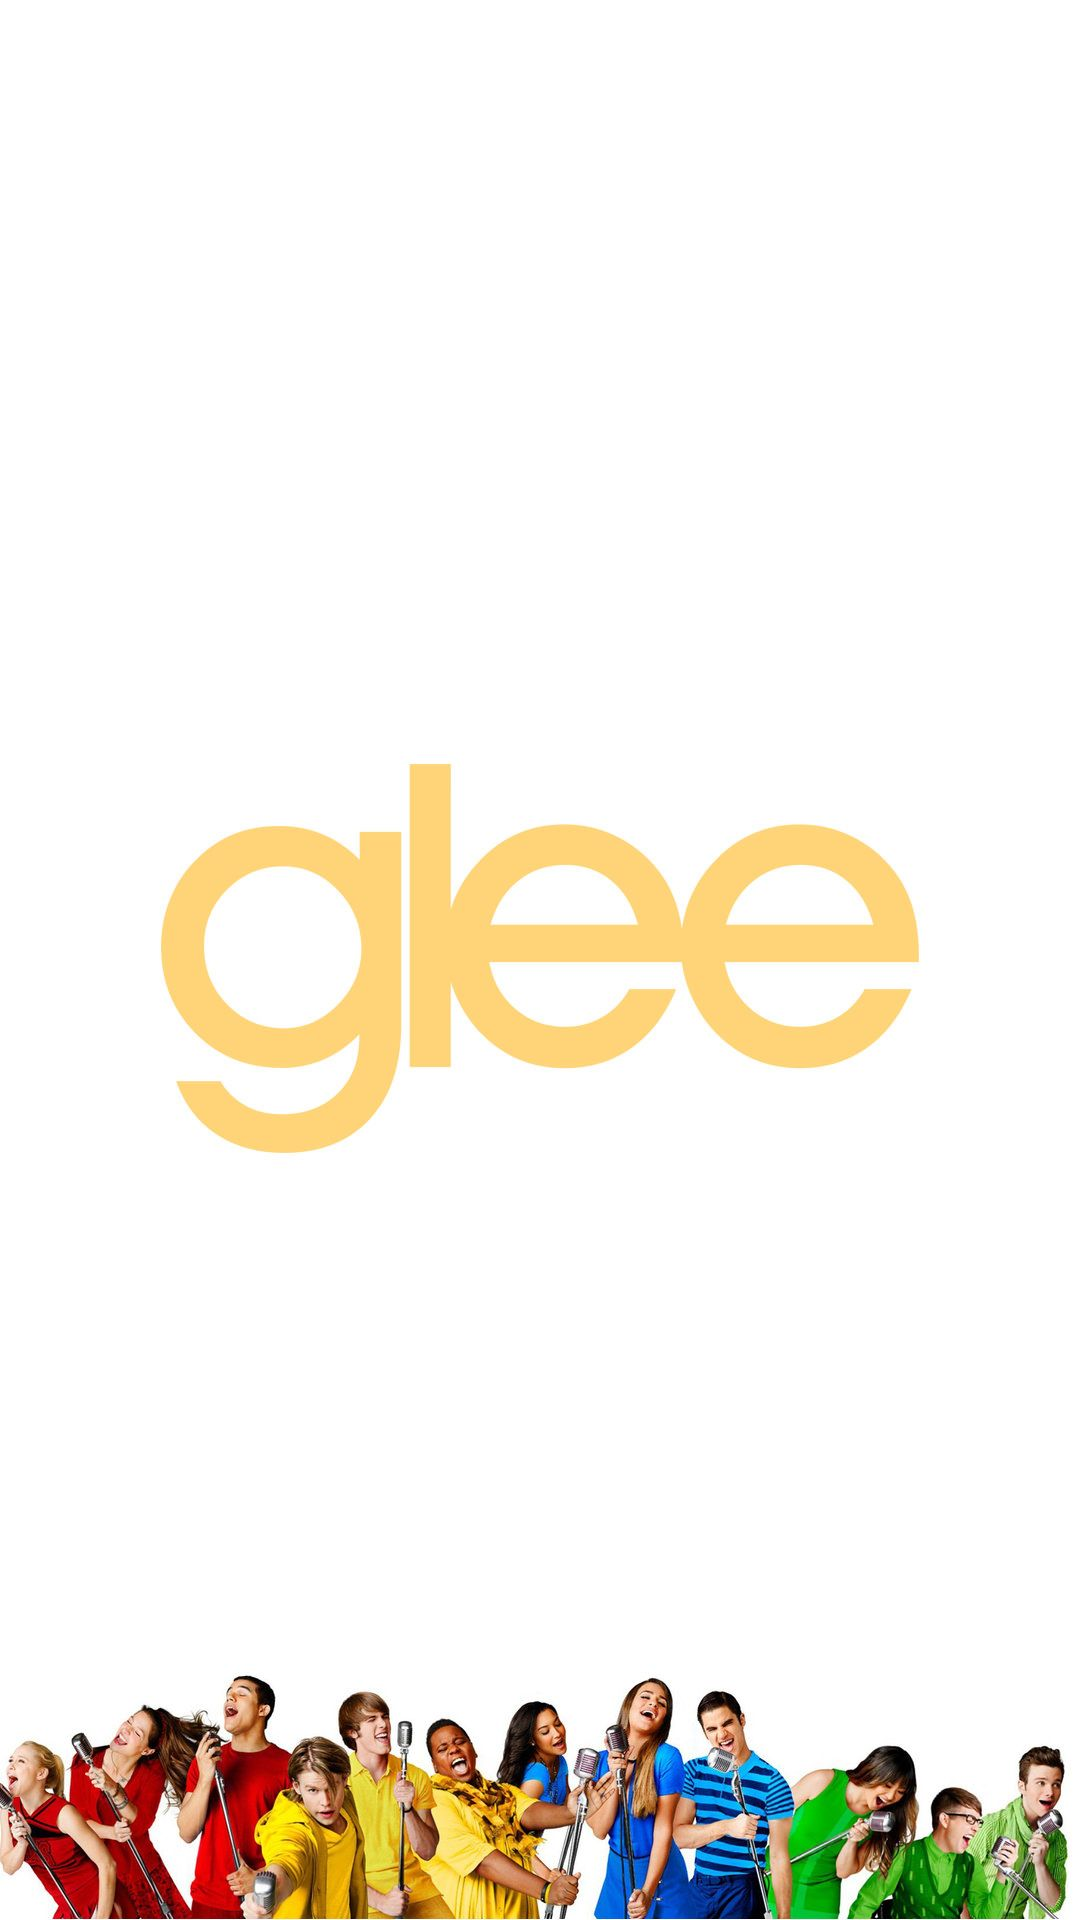 Pin by noelle.clayman💜 on glee ️ Glee funny, Glee, Glee cast